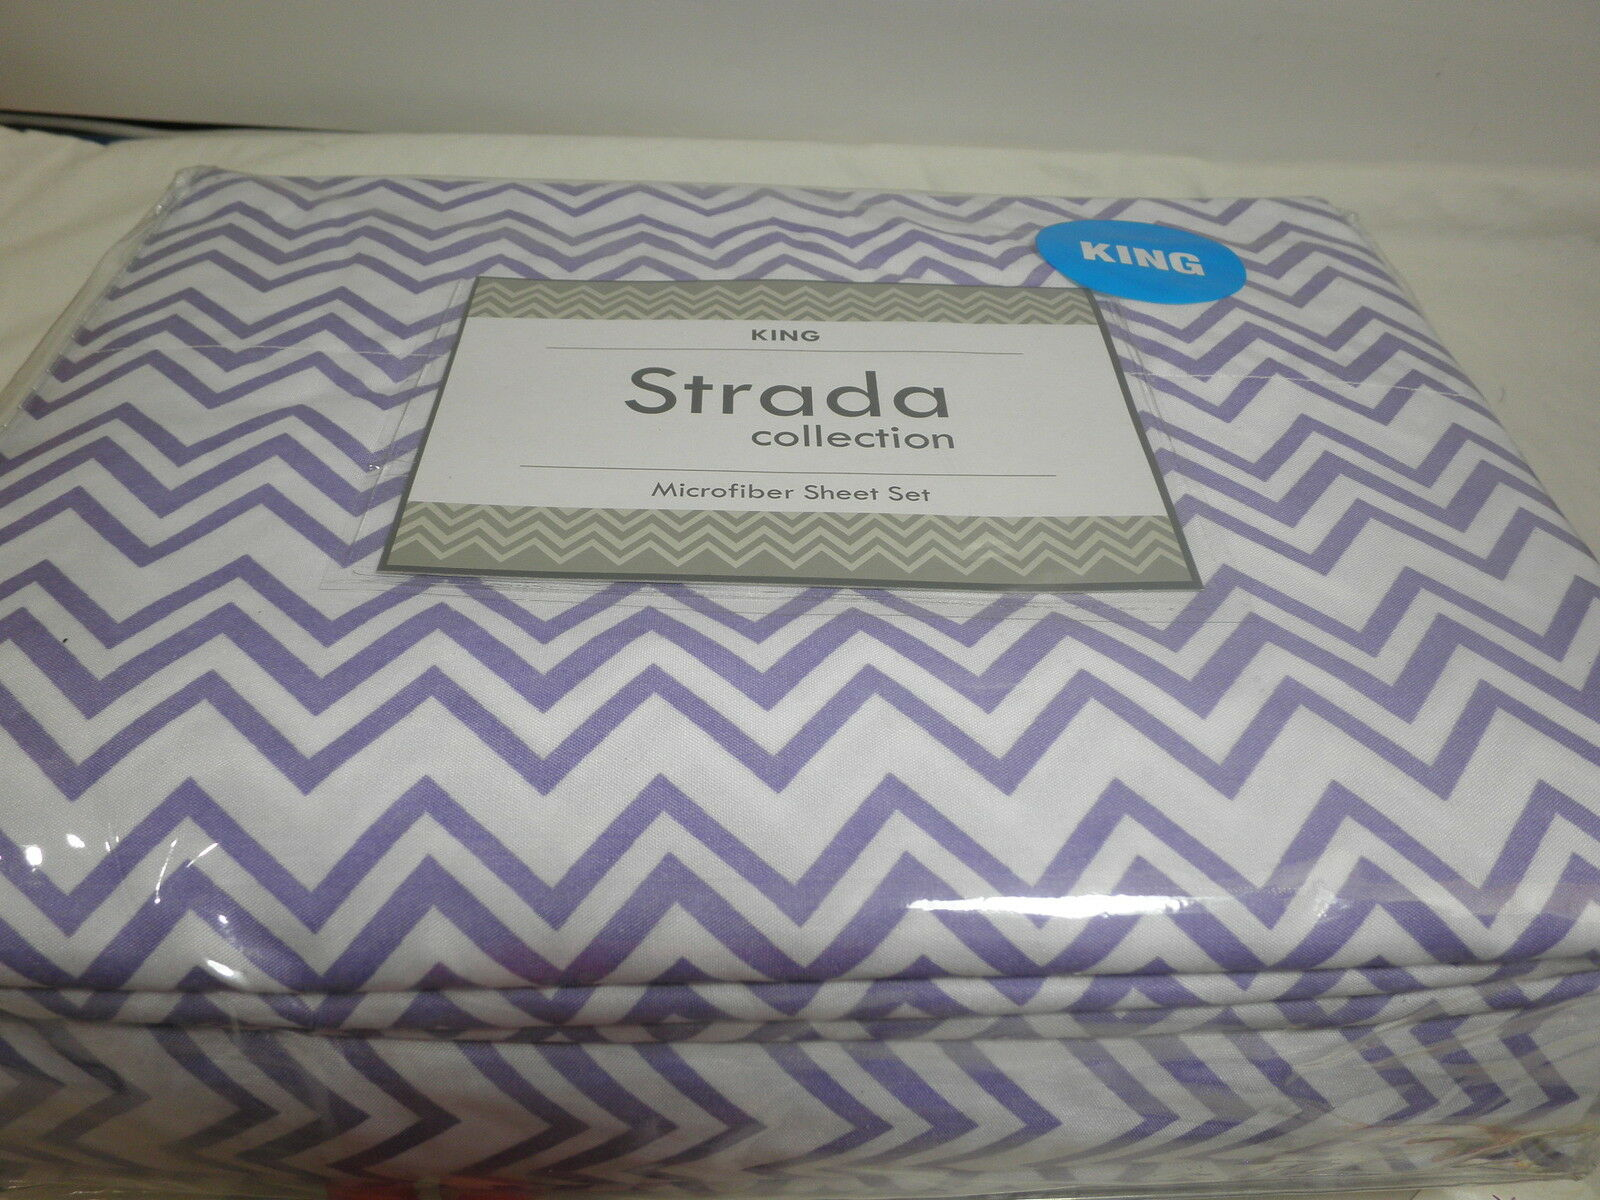 New Strada Collection Microfiber King Sheet Set - Purple and White Zig Zag NIP